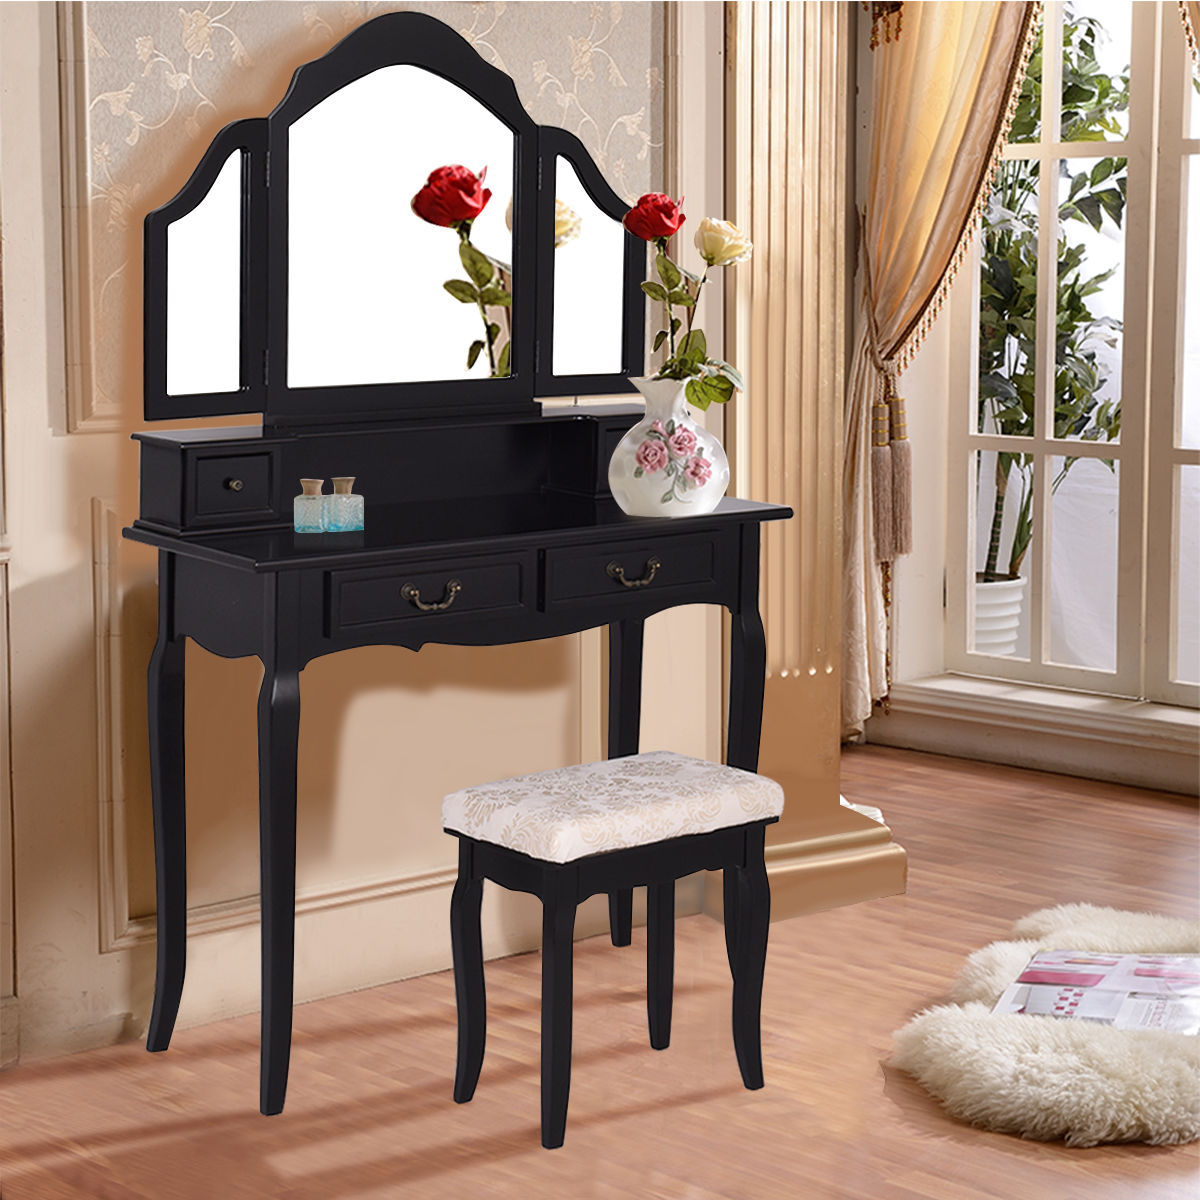 Costway Black Tri Folding Mirror Vanity Makeup Table Set Bedroom W Stool & 4 Drawers Black by Costway